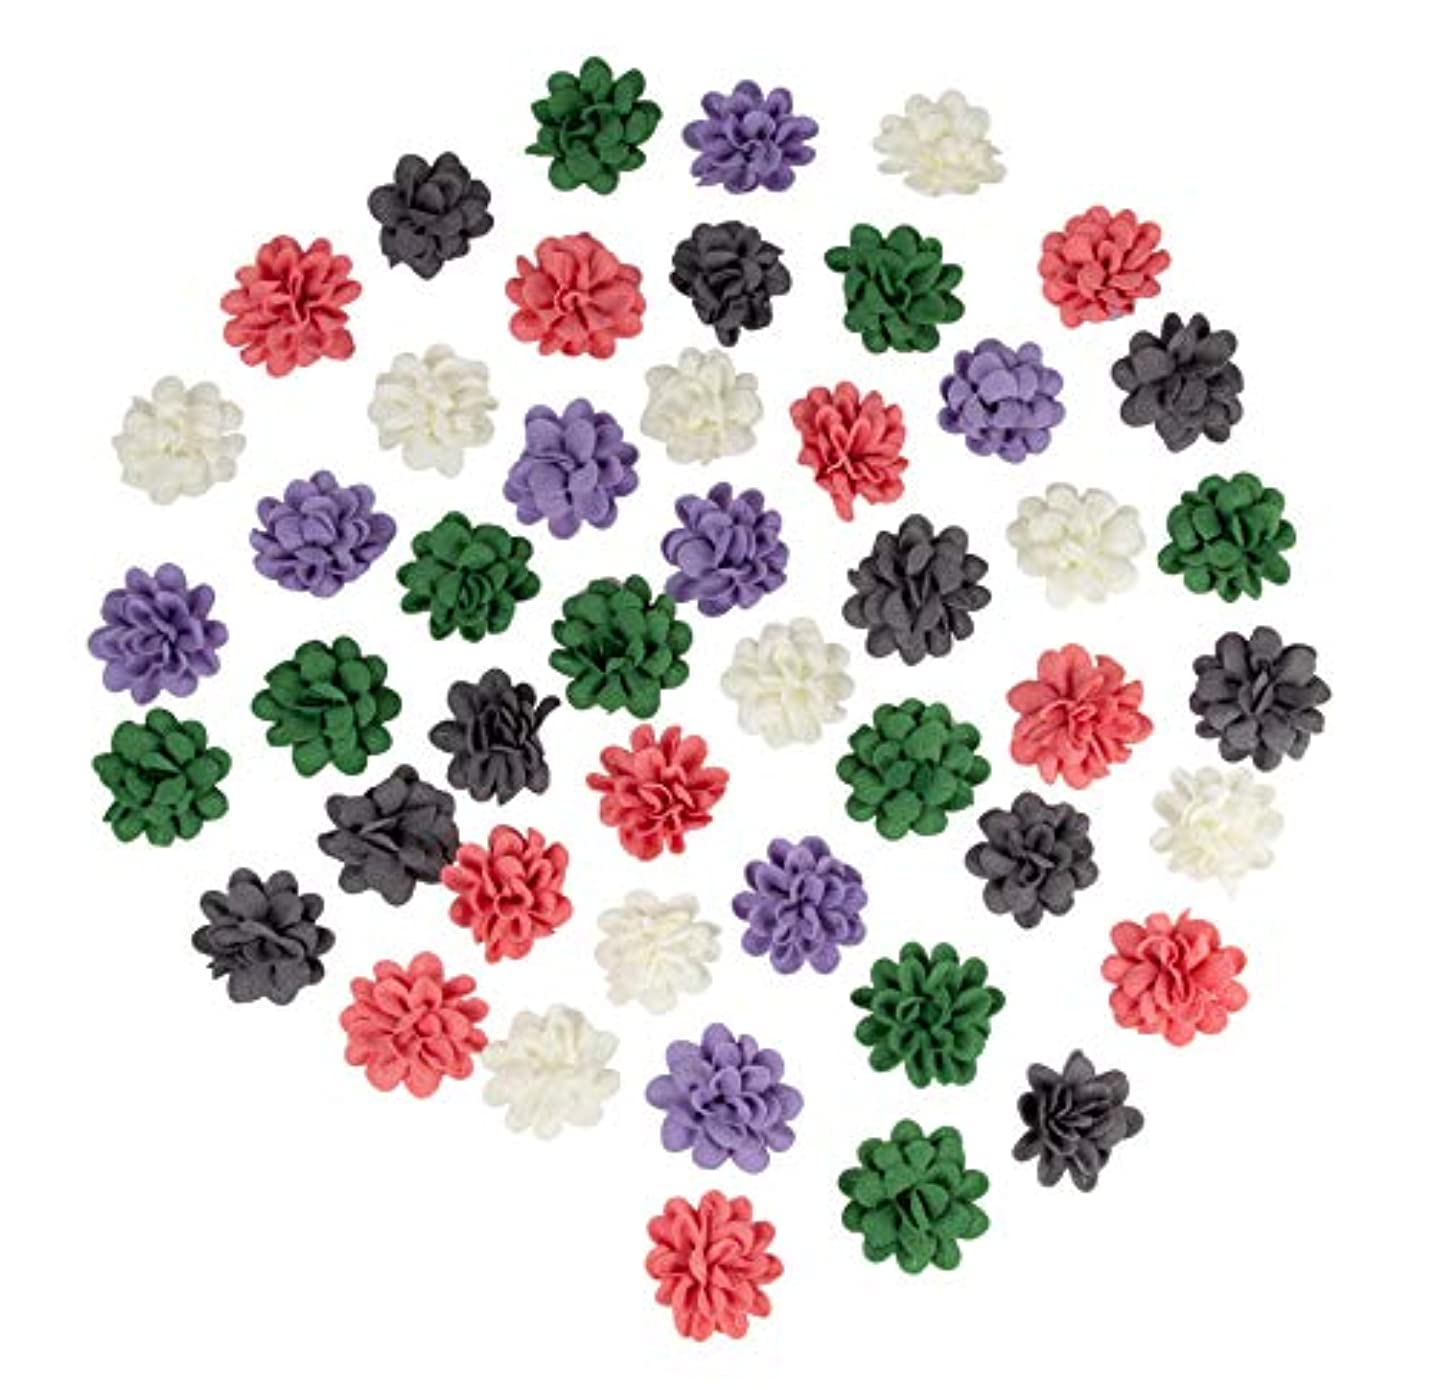 Juvale Bulk 60 Pack Artificial Chiffon Fabric Craft Flower Embellishments, Assorted Colors, 2.8 Inches